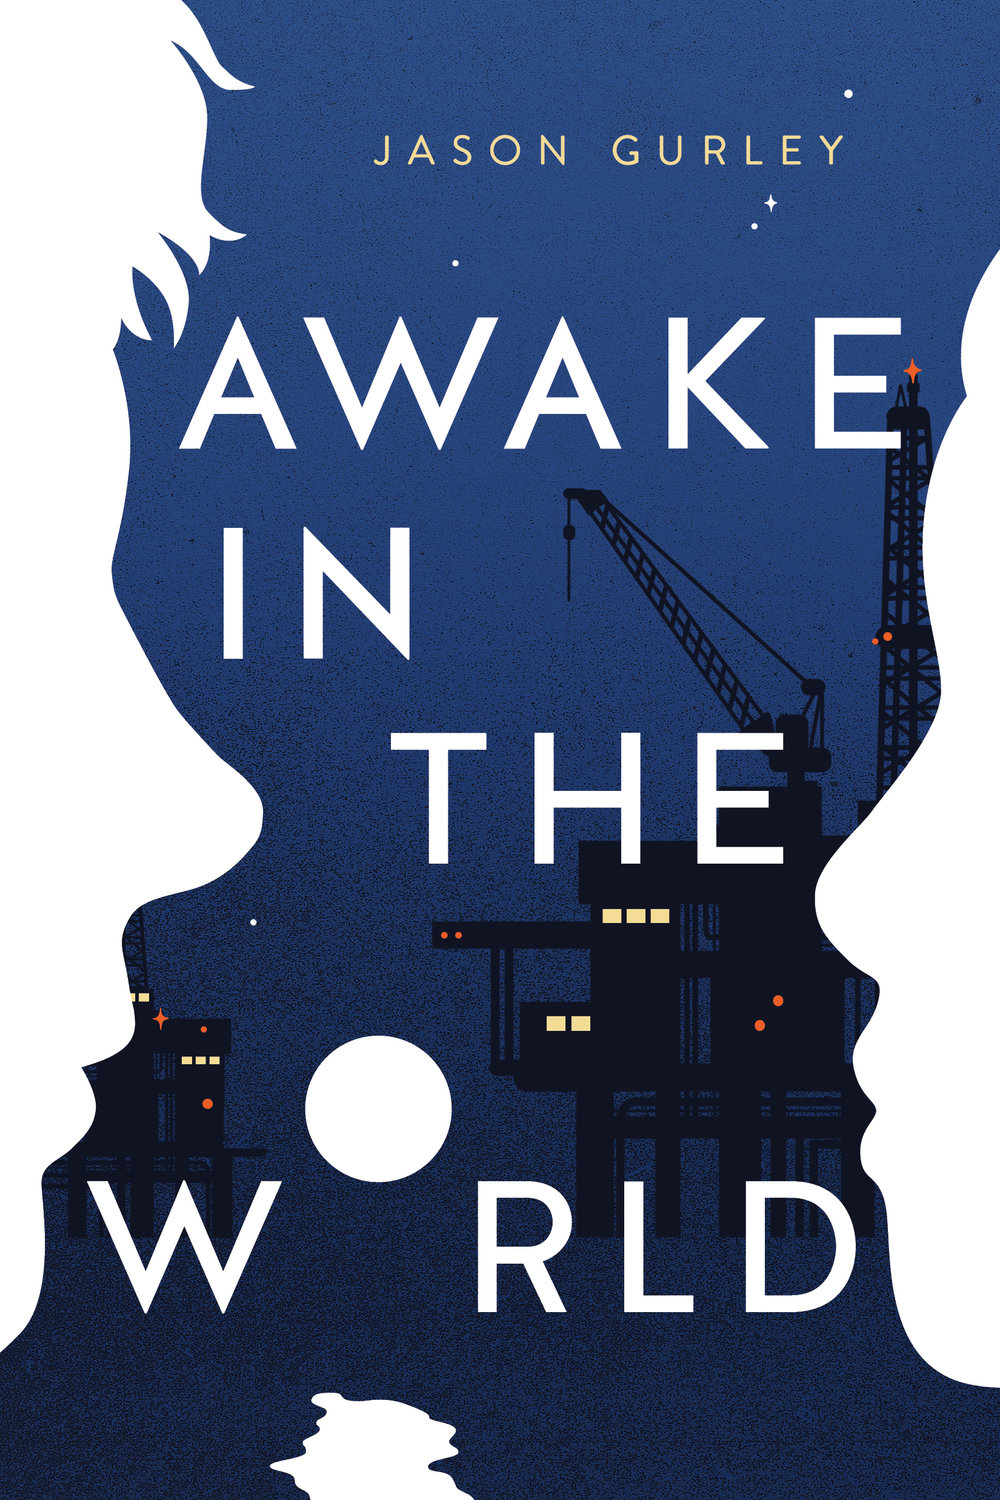 Awake In The World , Jason Gurley  For Roaring Brook Press.